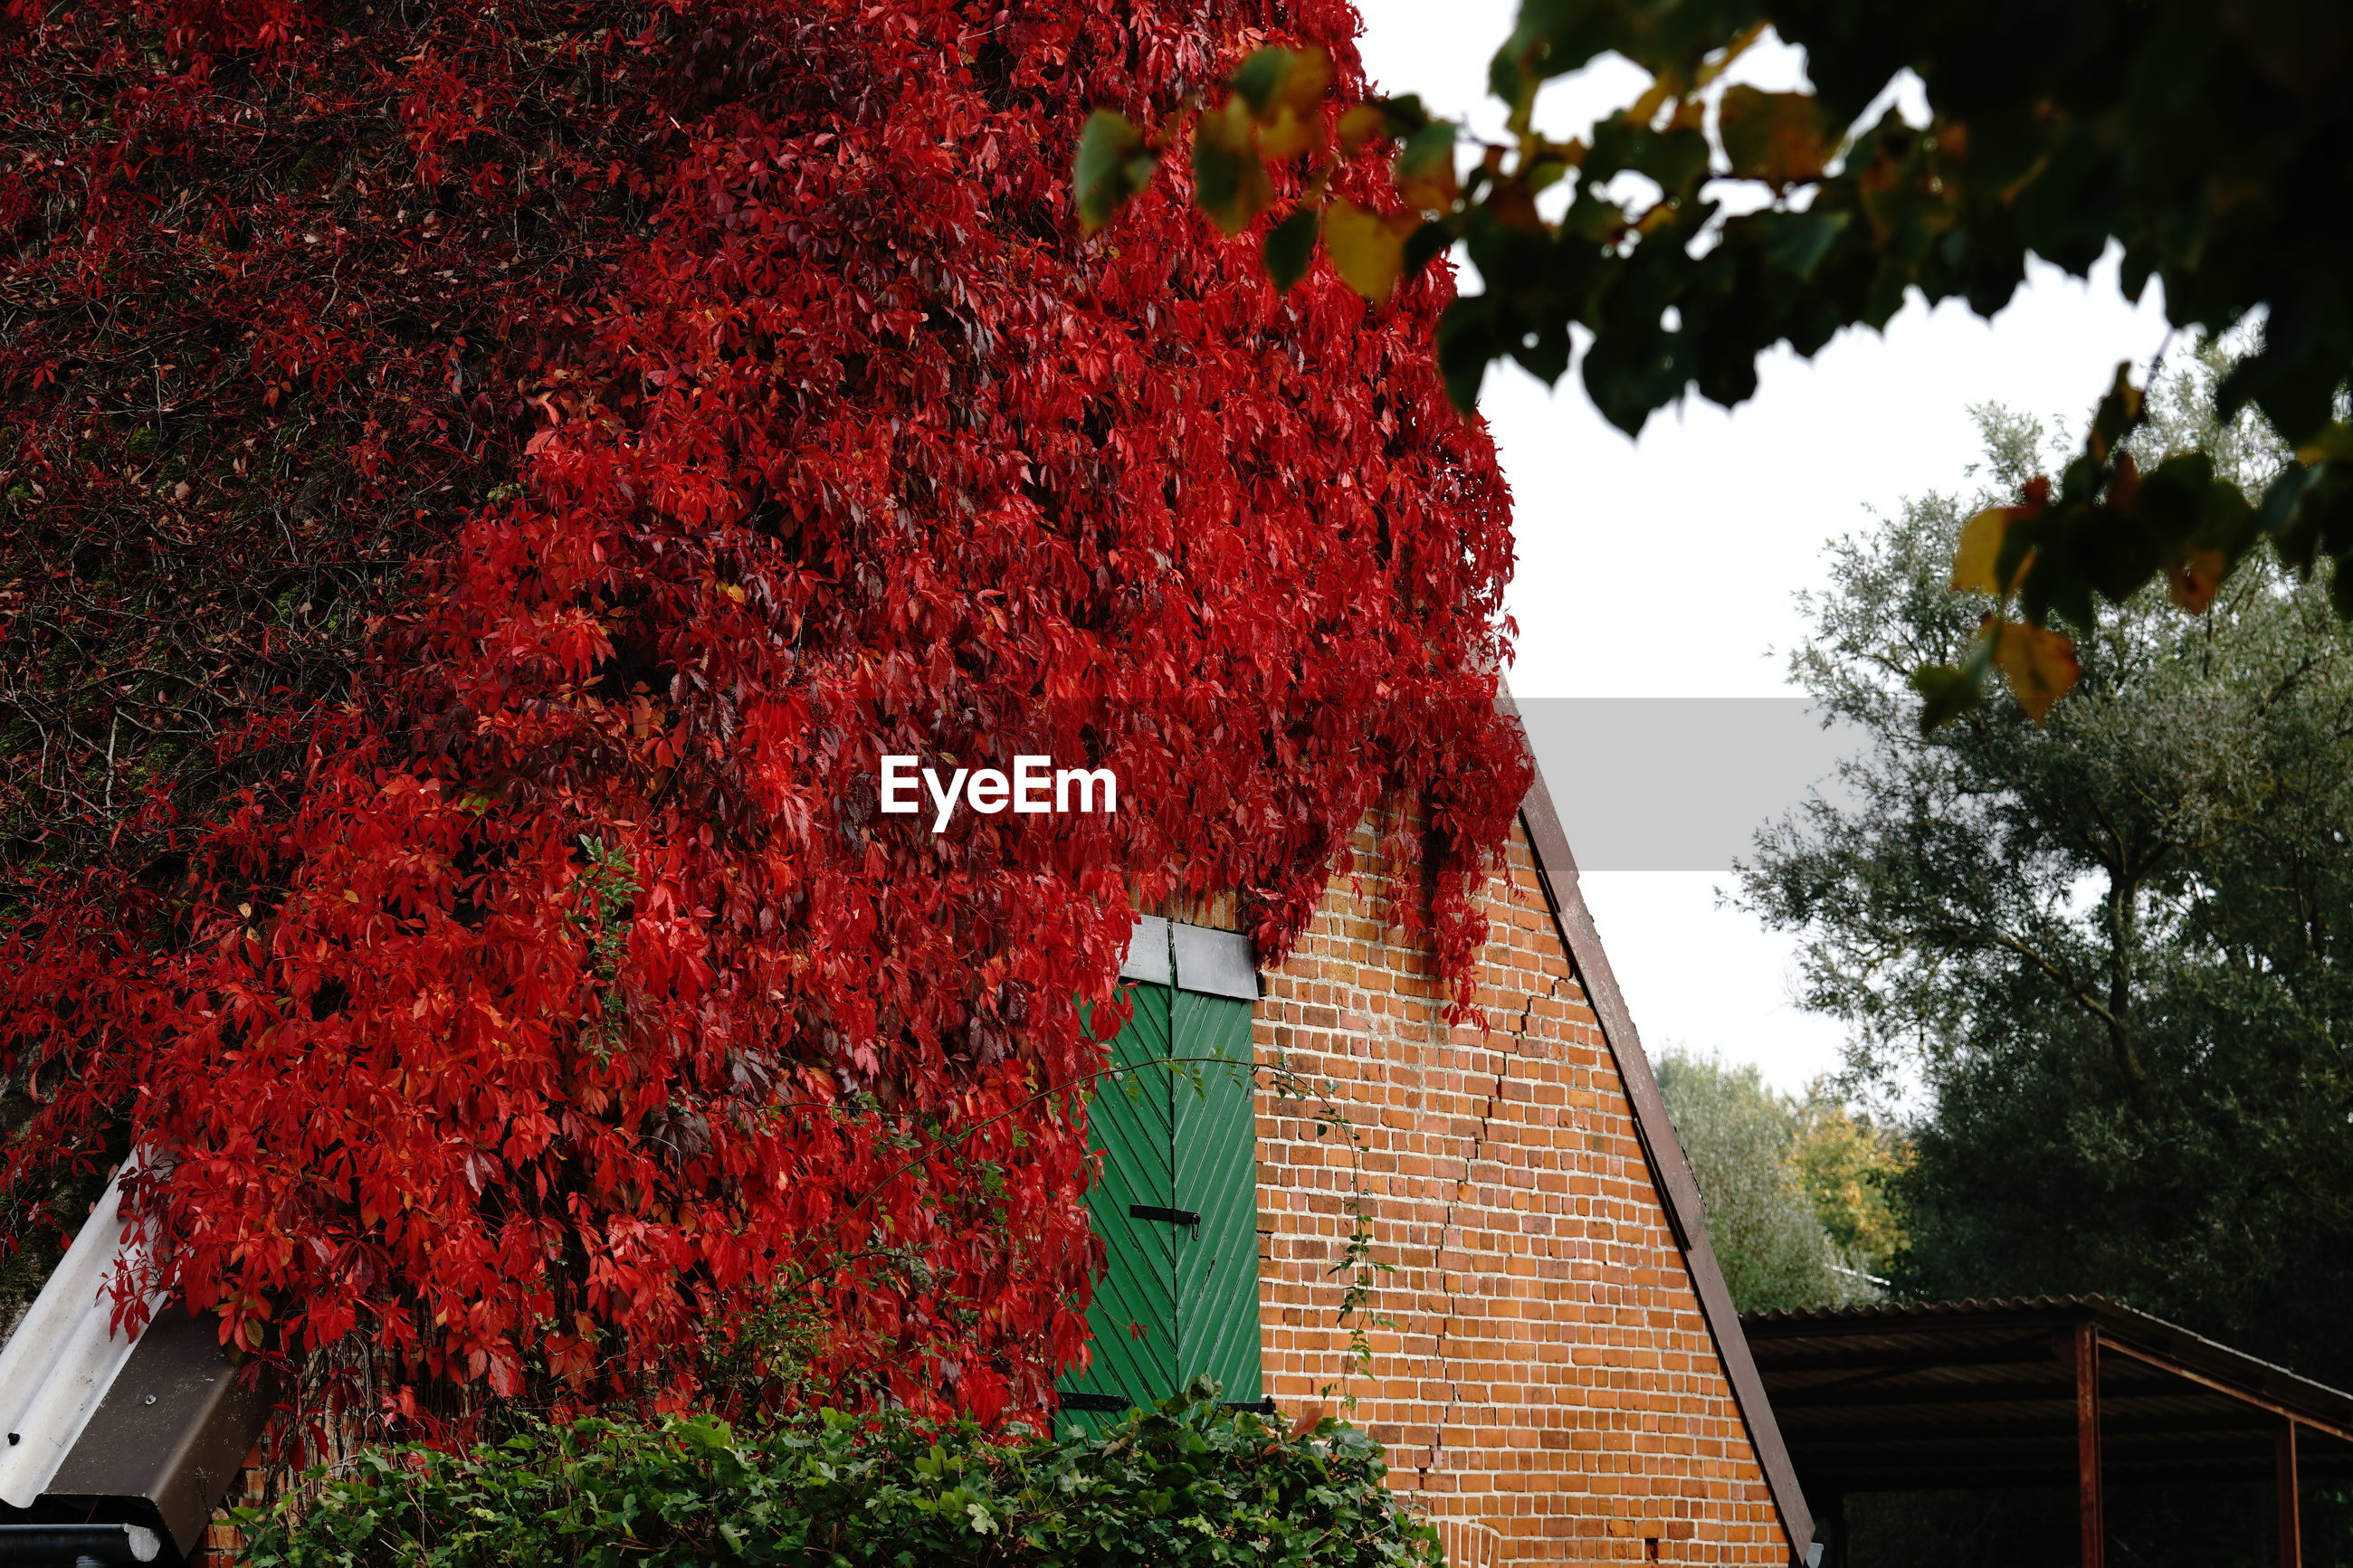 LOW ANGLE VIEW OF RED FLOWERING TREE BY HOUSE